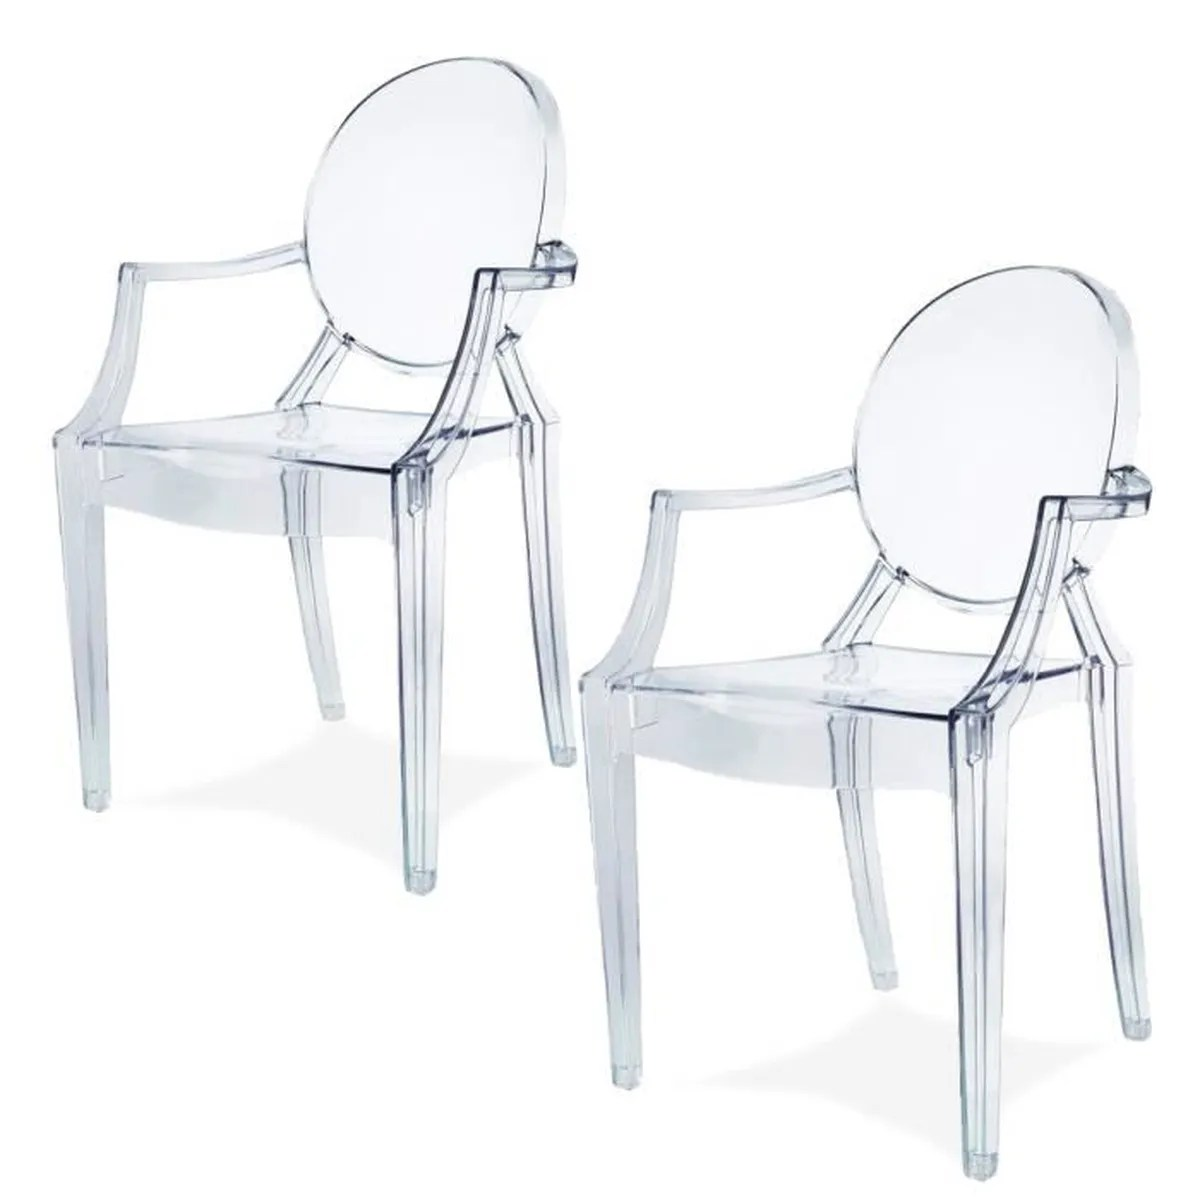 Fauteuil Ghost Damiware Lot De 2 Plexiglas Acrylique Ghost Chair Accoudoir Chaise